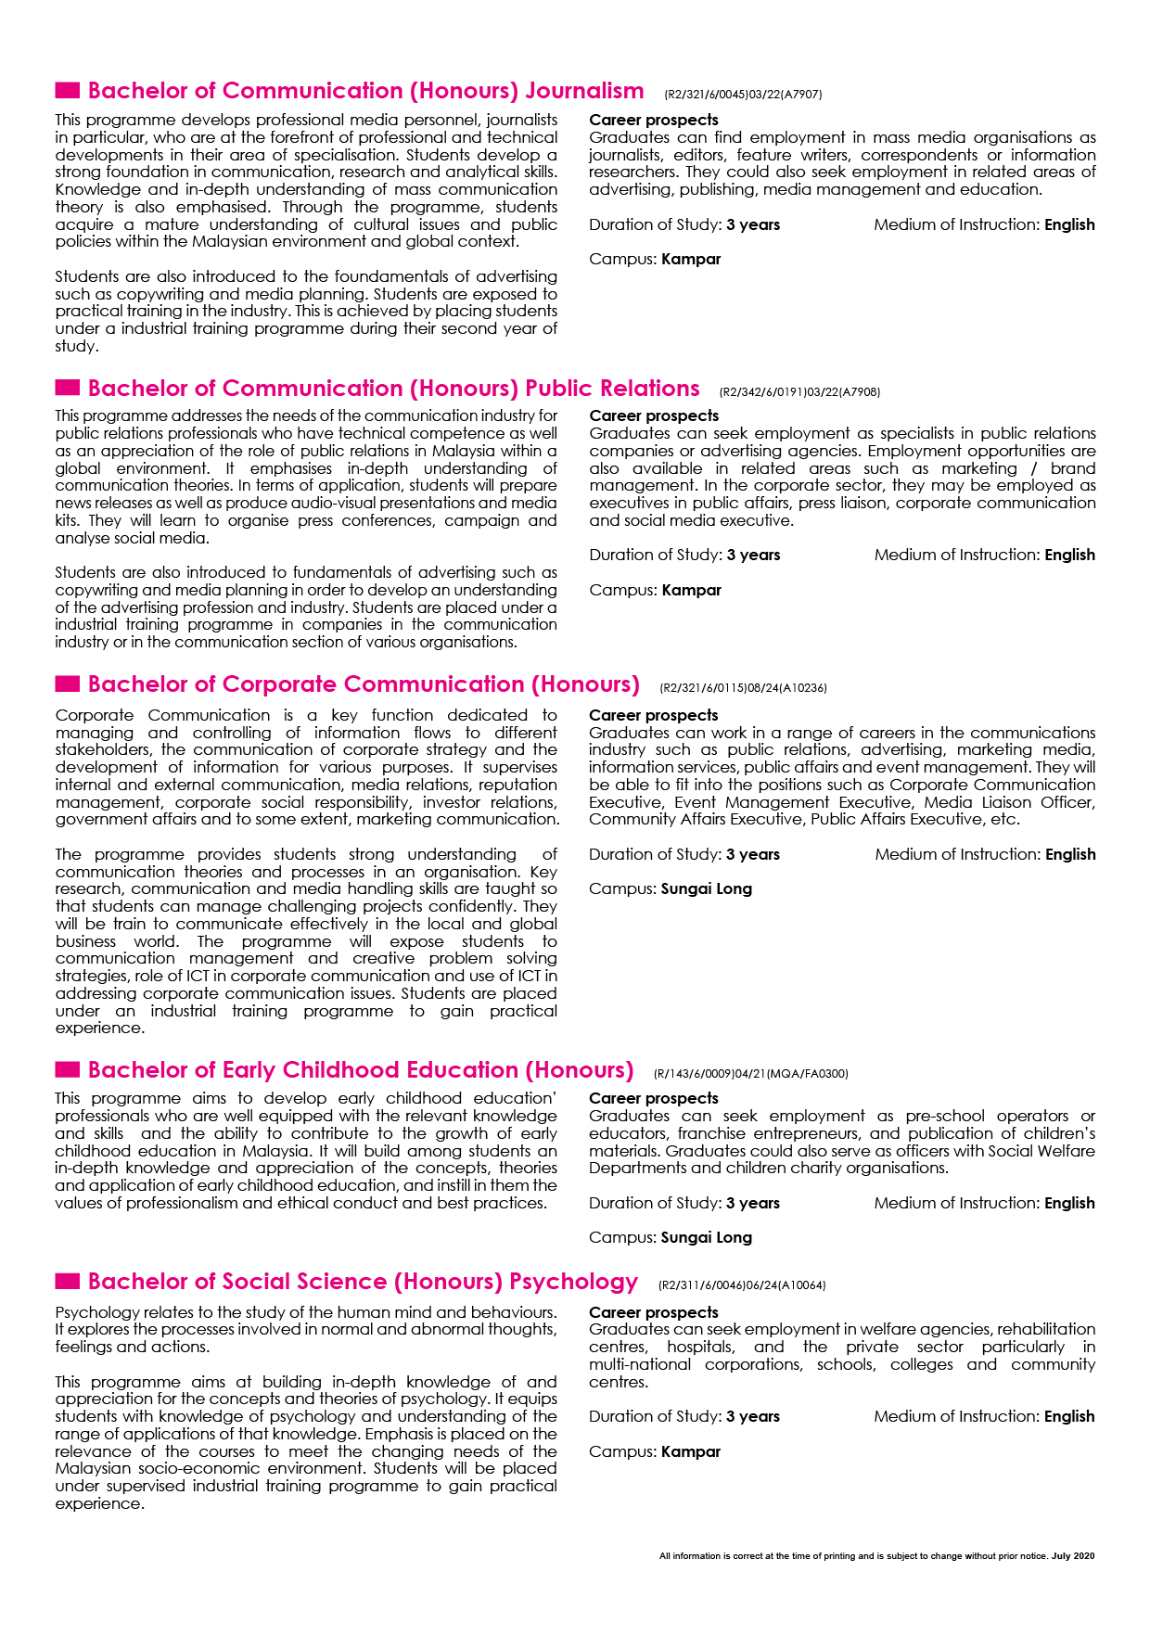 career prospects in arts, social sciences and education pg3